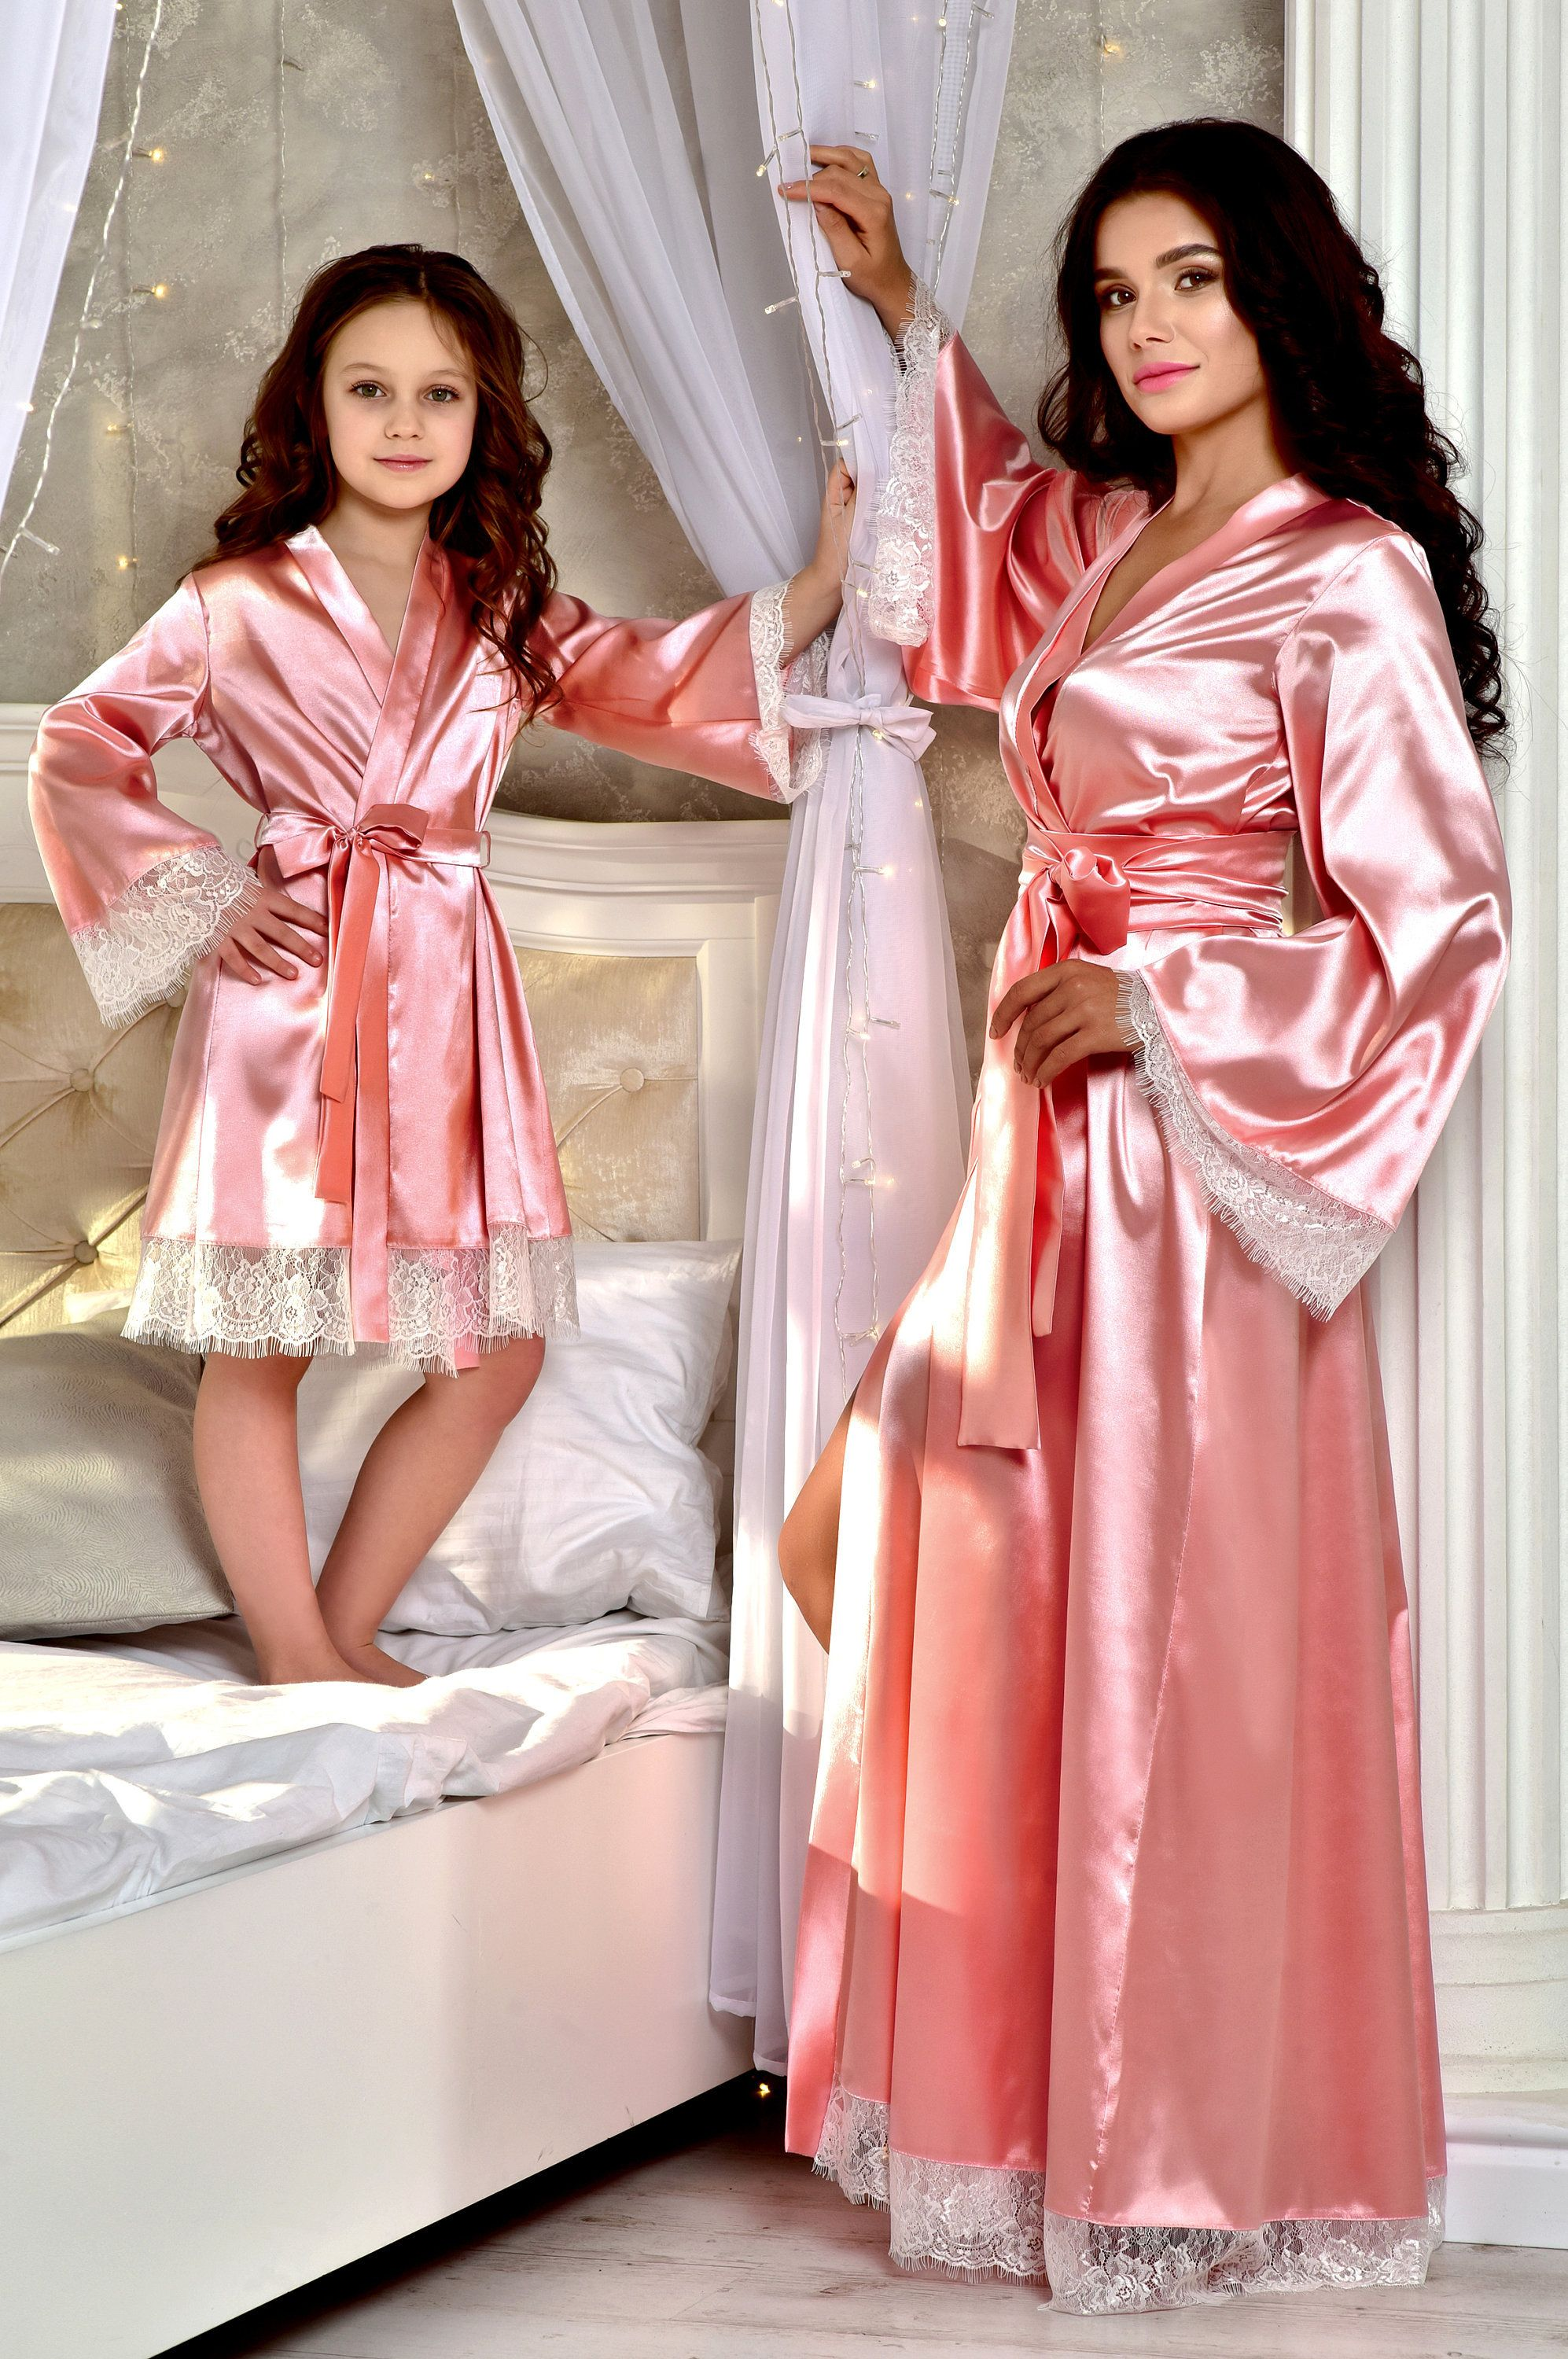 6f76112e886f8 This is extremely beautiful satin robe for a little junior bridesmaid. The  robe is of Blush Pink stretch satin with wide sleeves and white Chantilly  ...